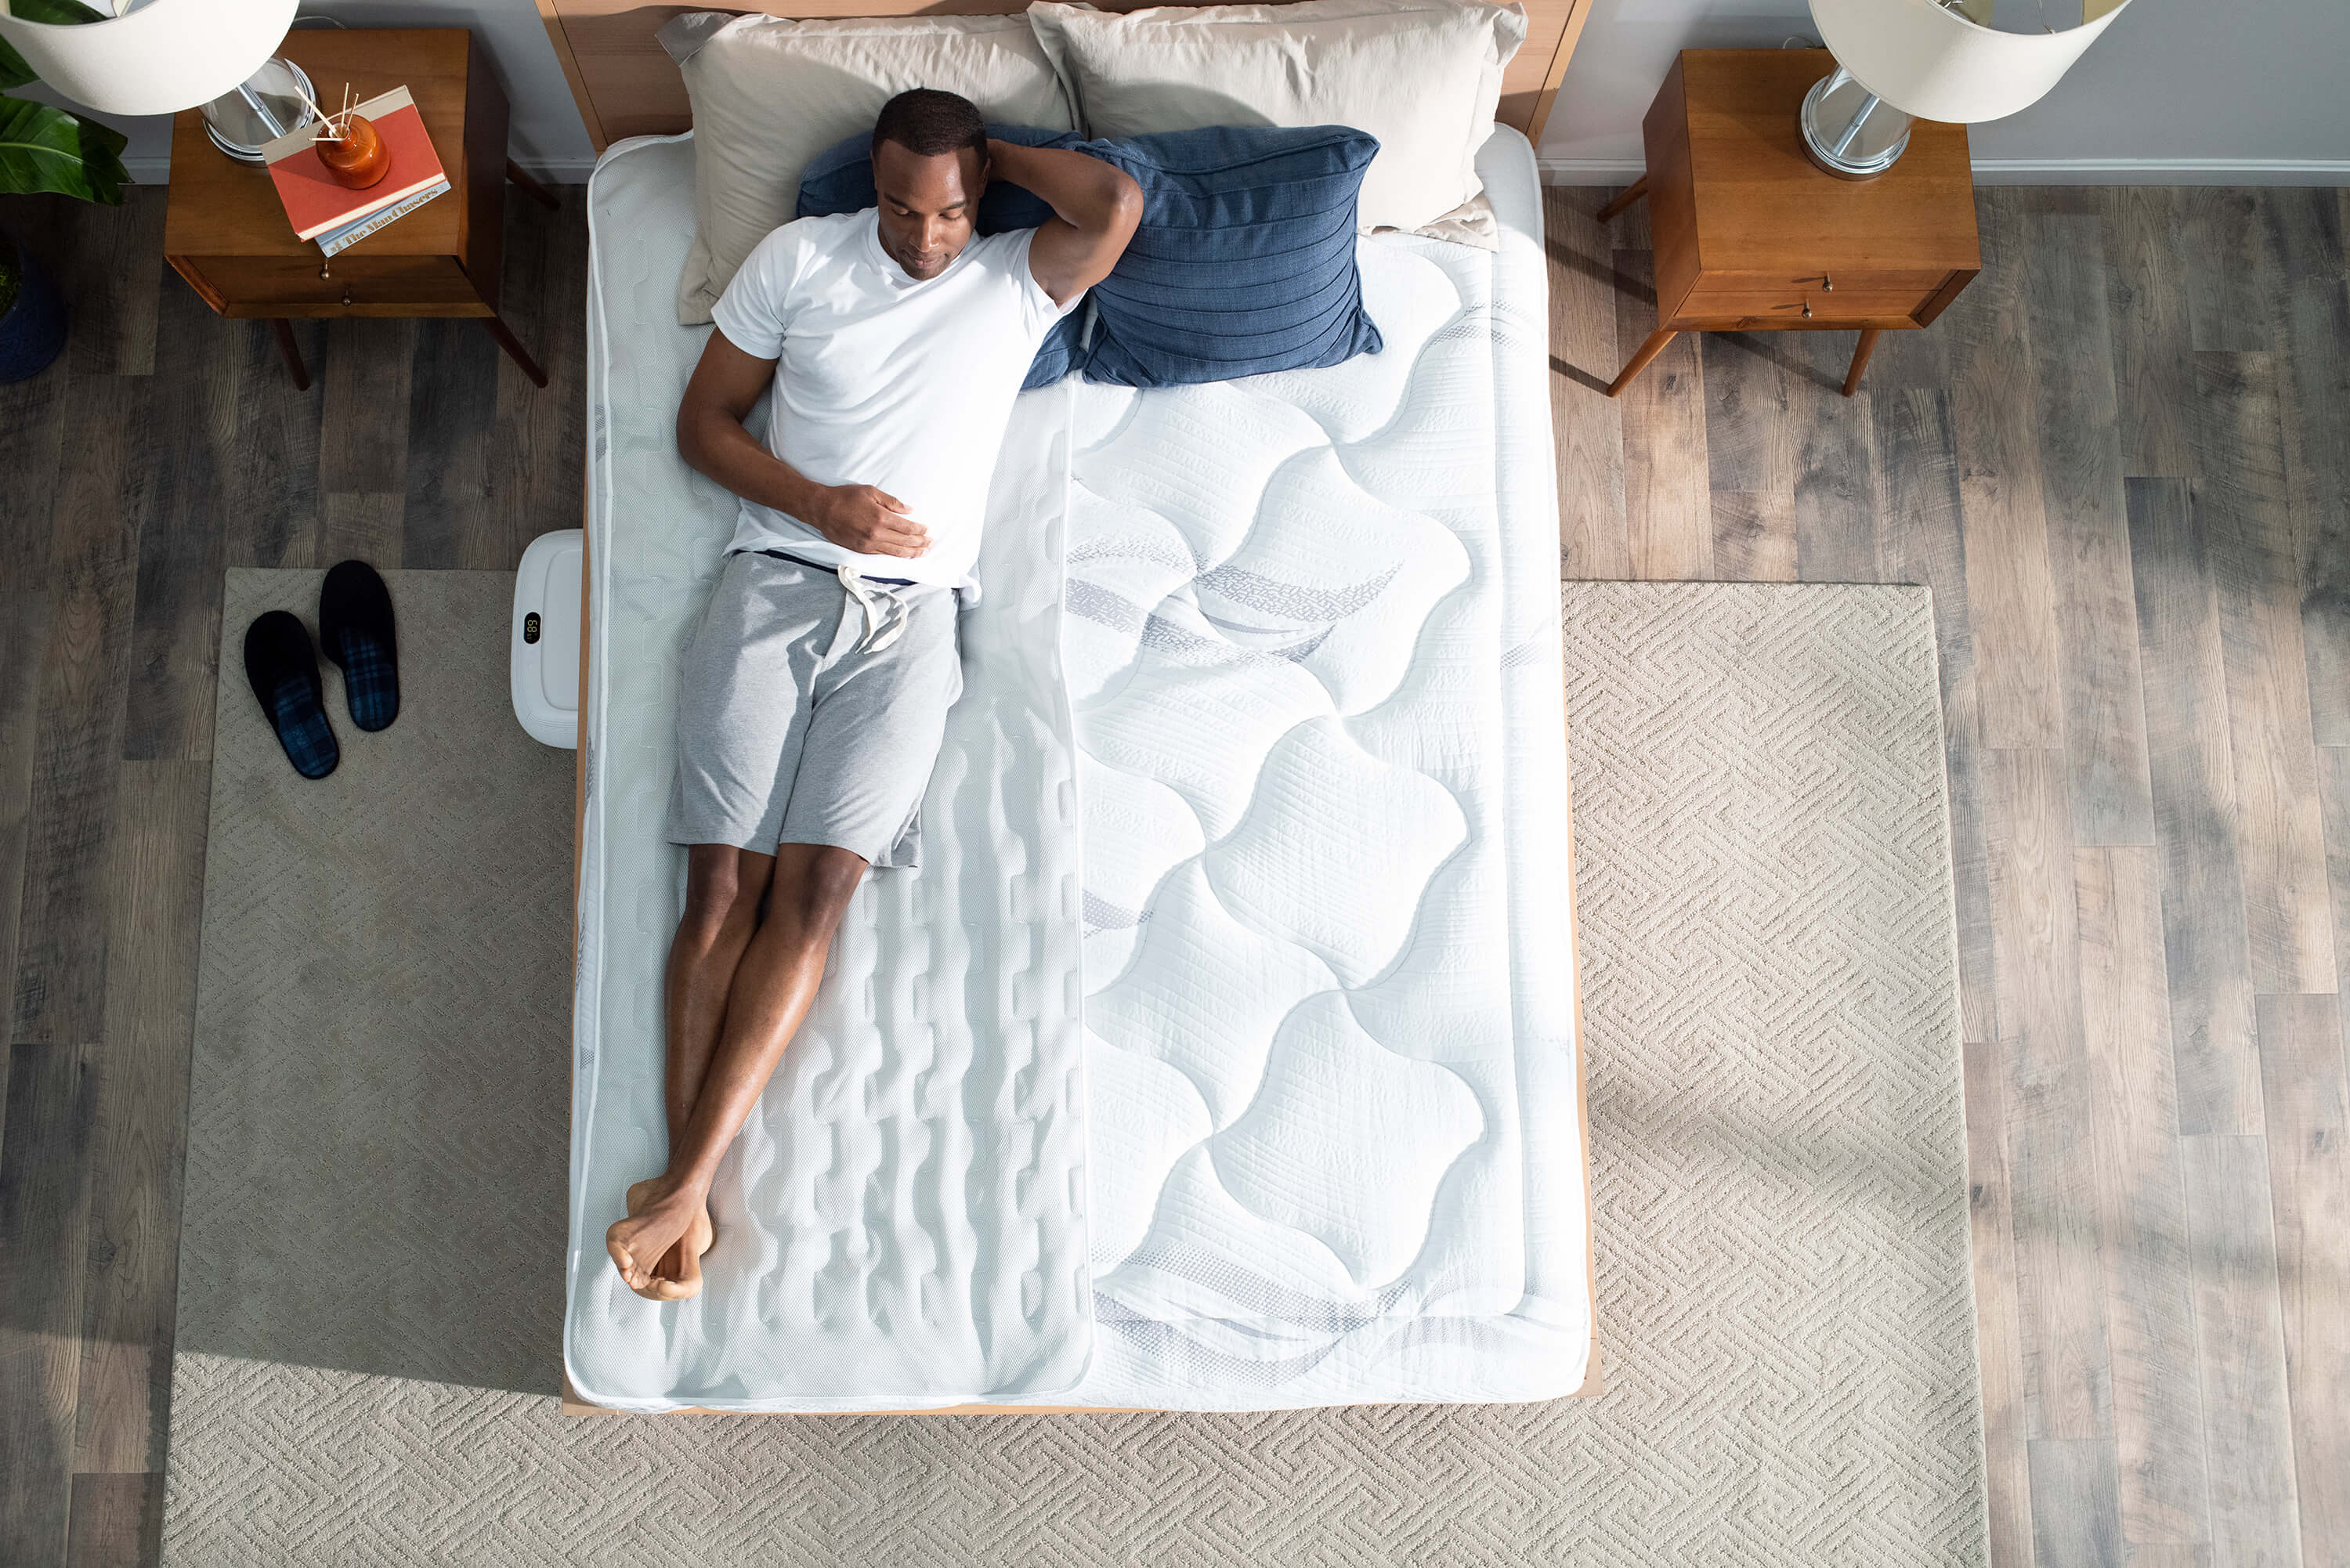 Animated gif of man with ooler sleep system